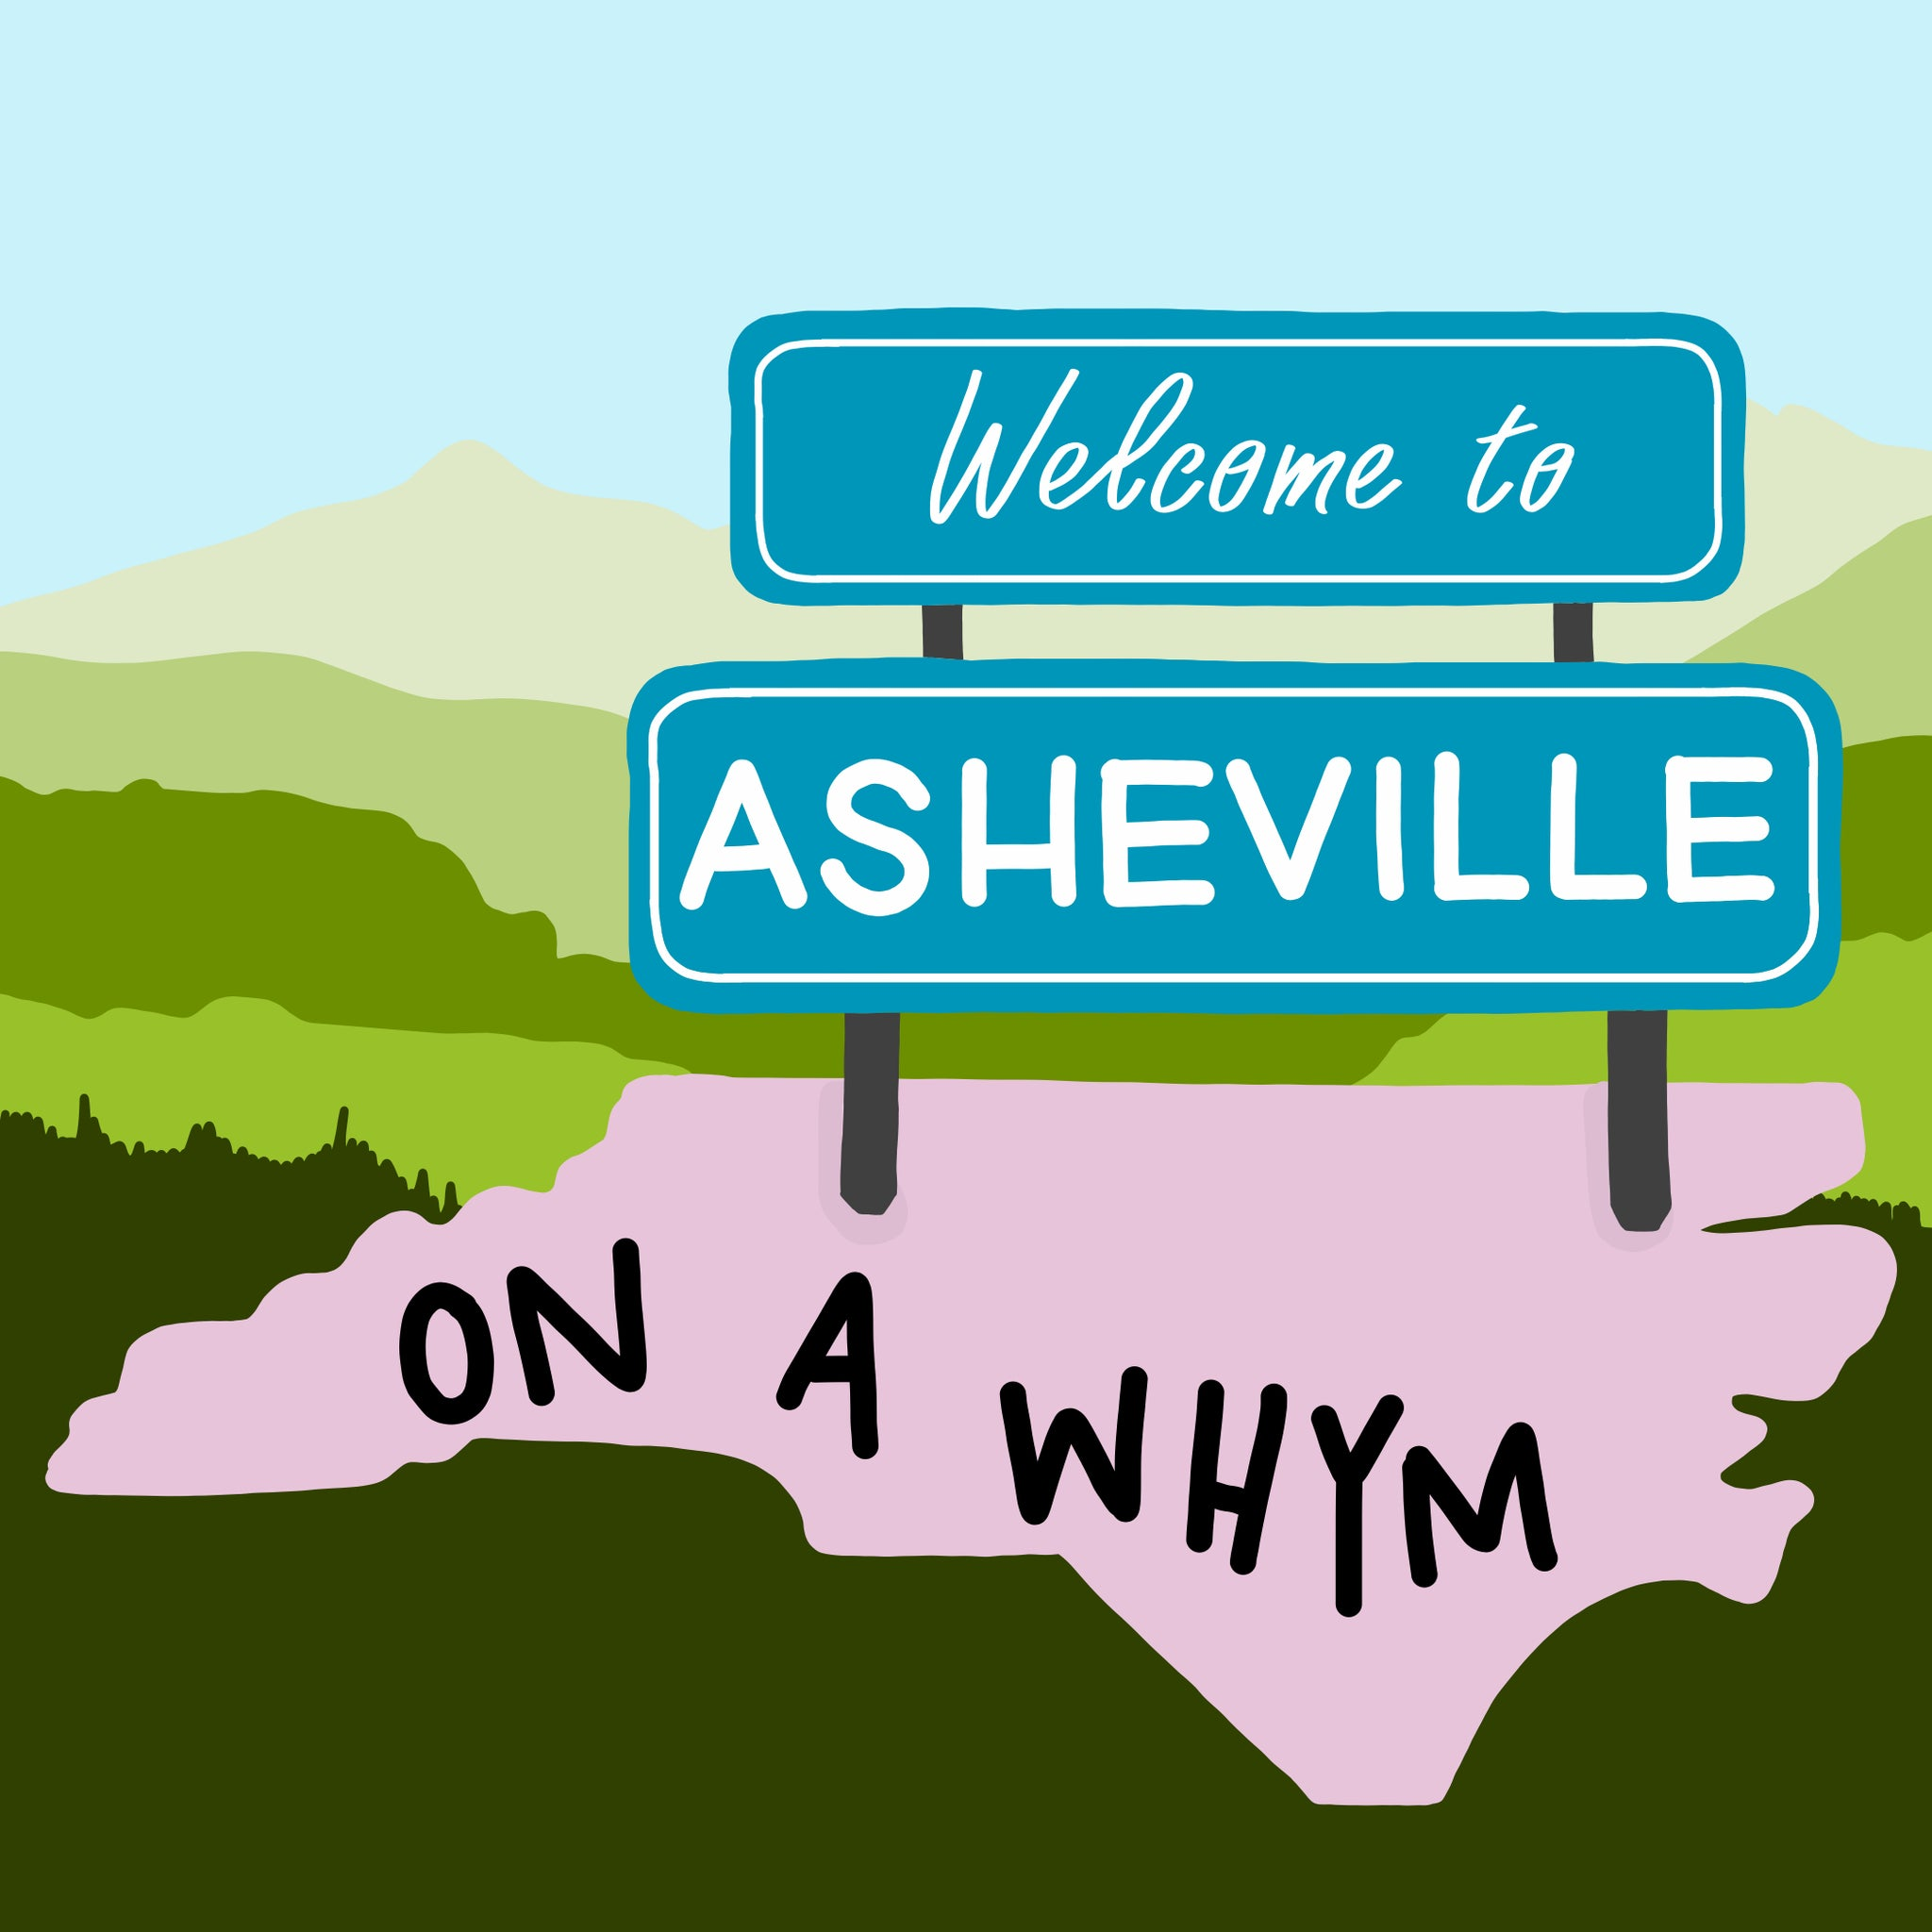 Whym to Asheville Cartoon